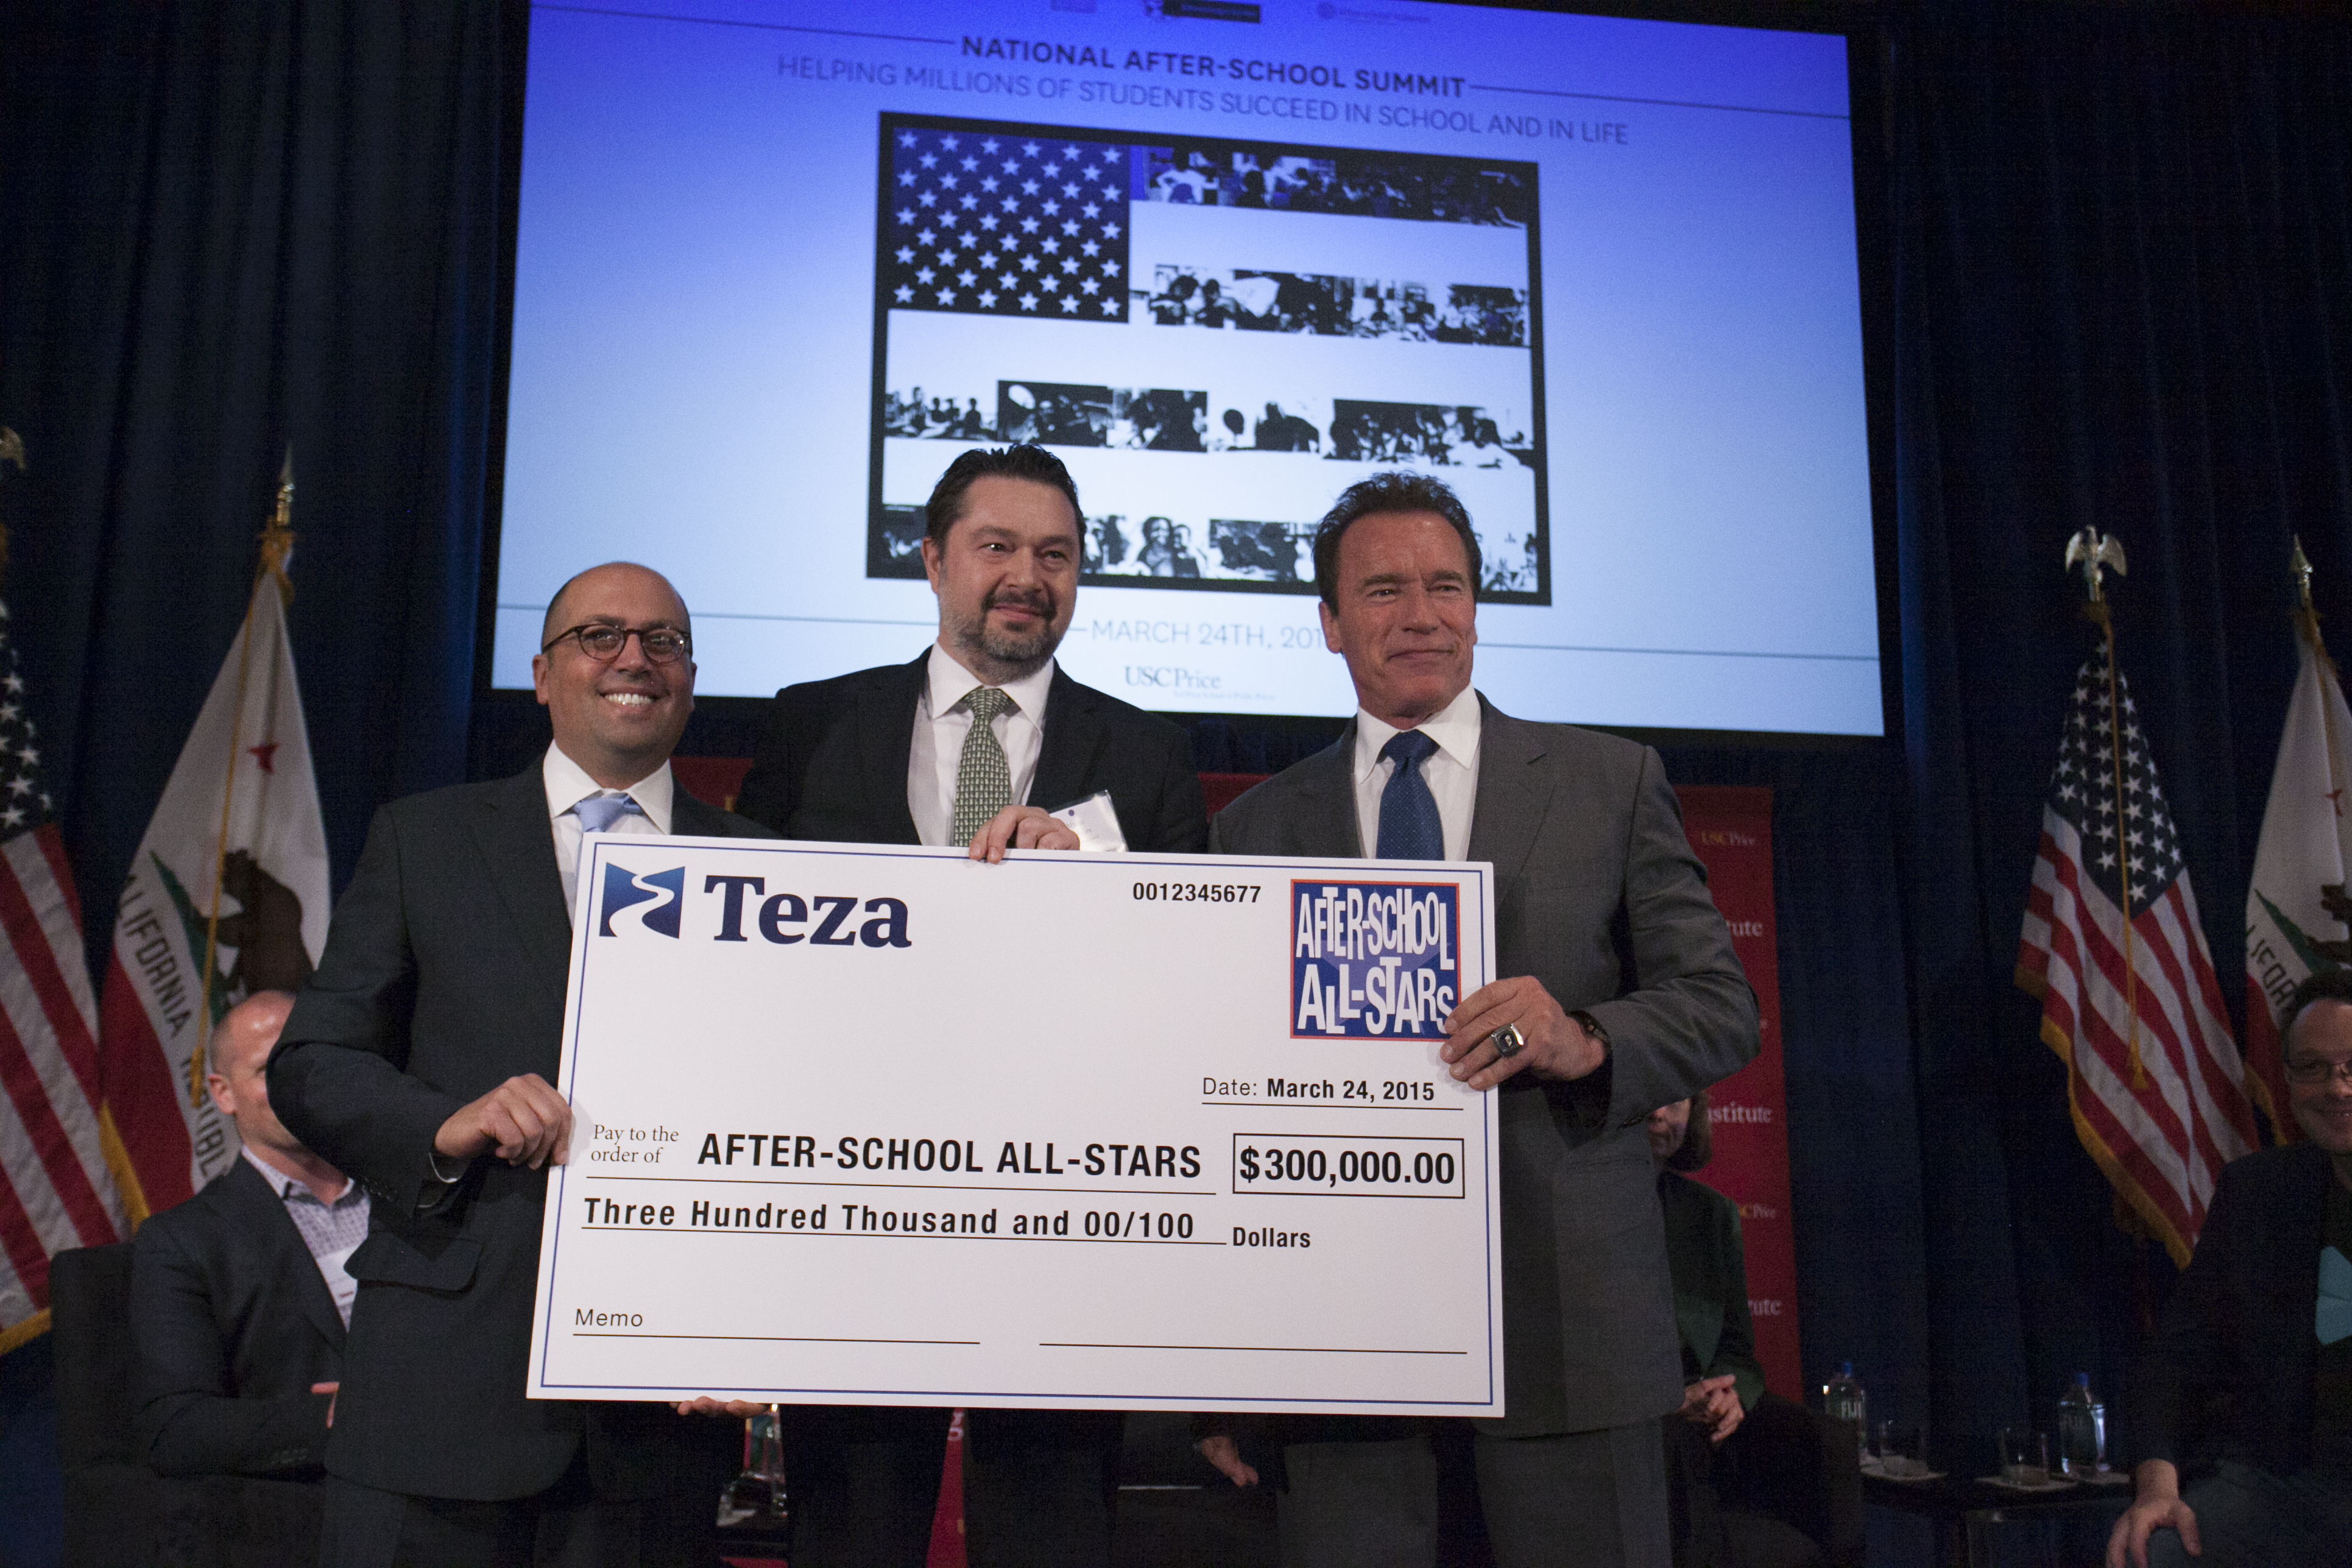 Misha malyshev ceo of teza technologies presents 300000 check full size voltagebd Image collections